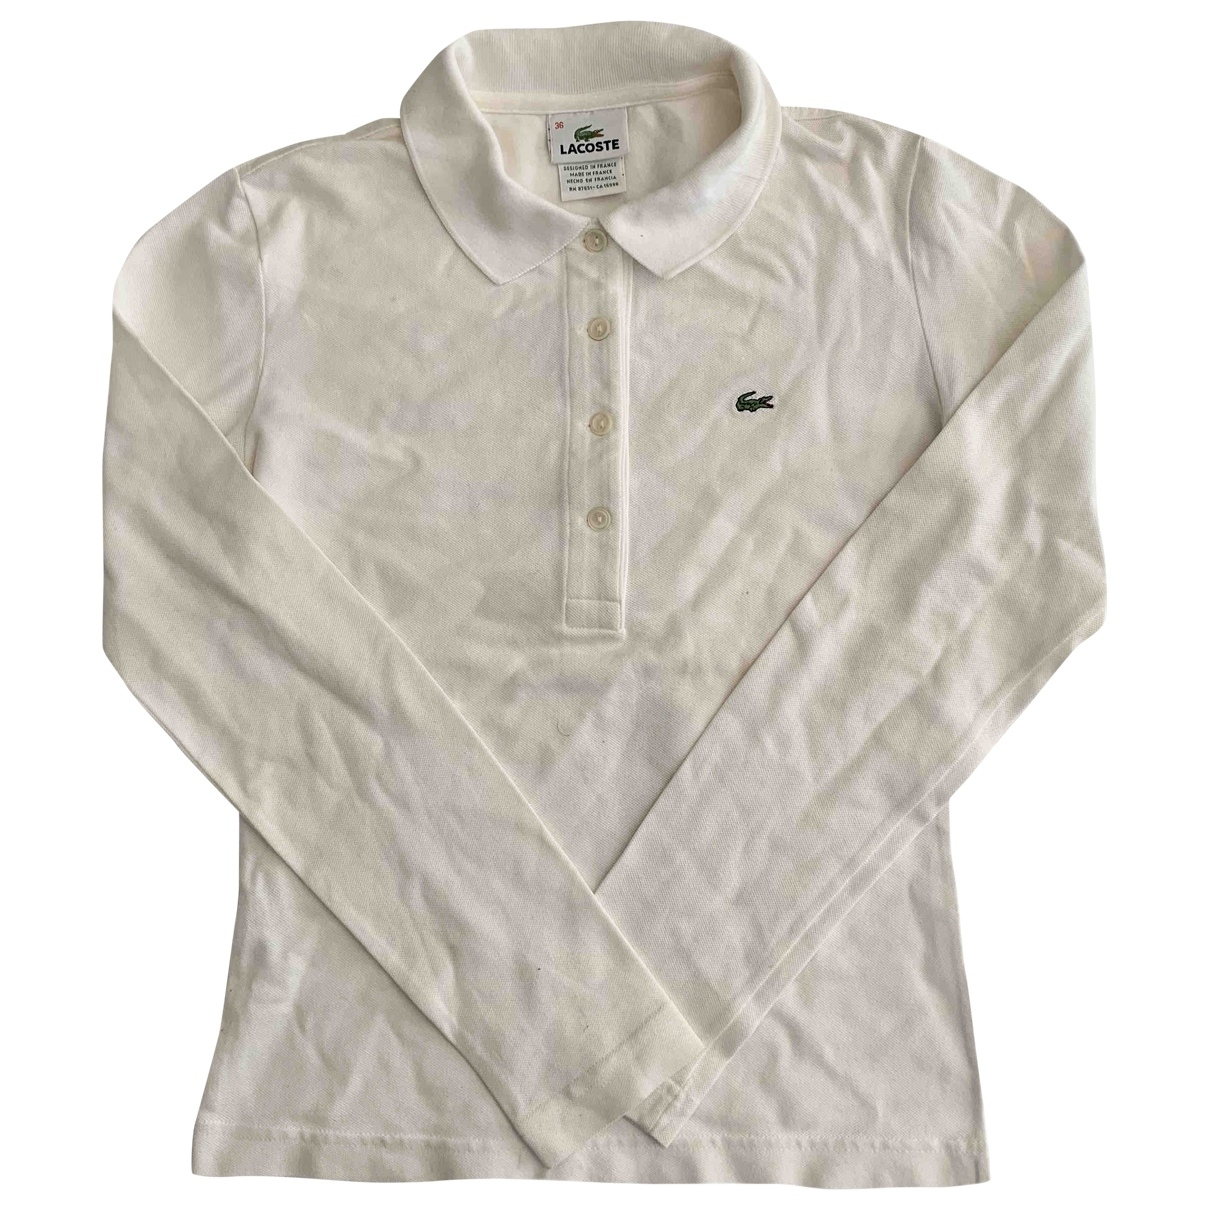 Lacoste \N White Cotton  top for Women 36 FR